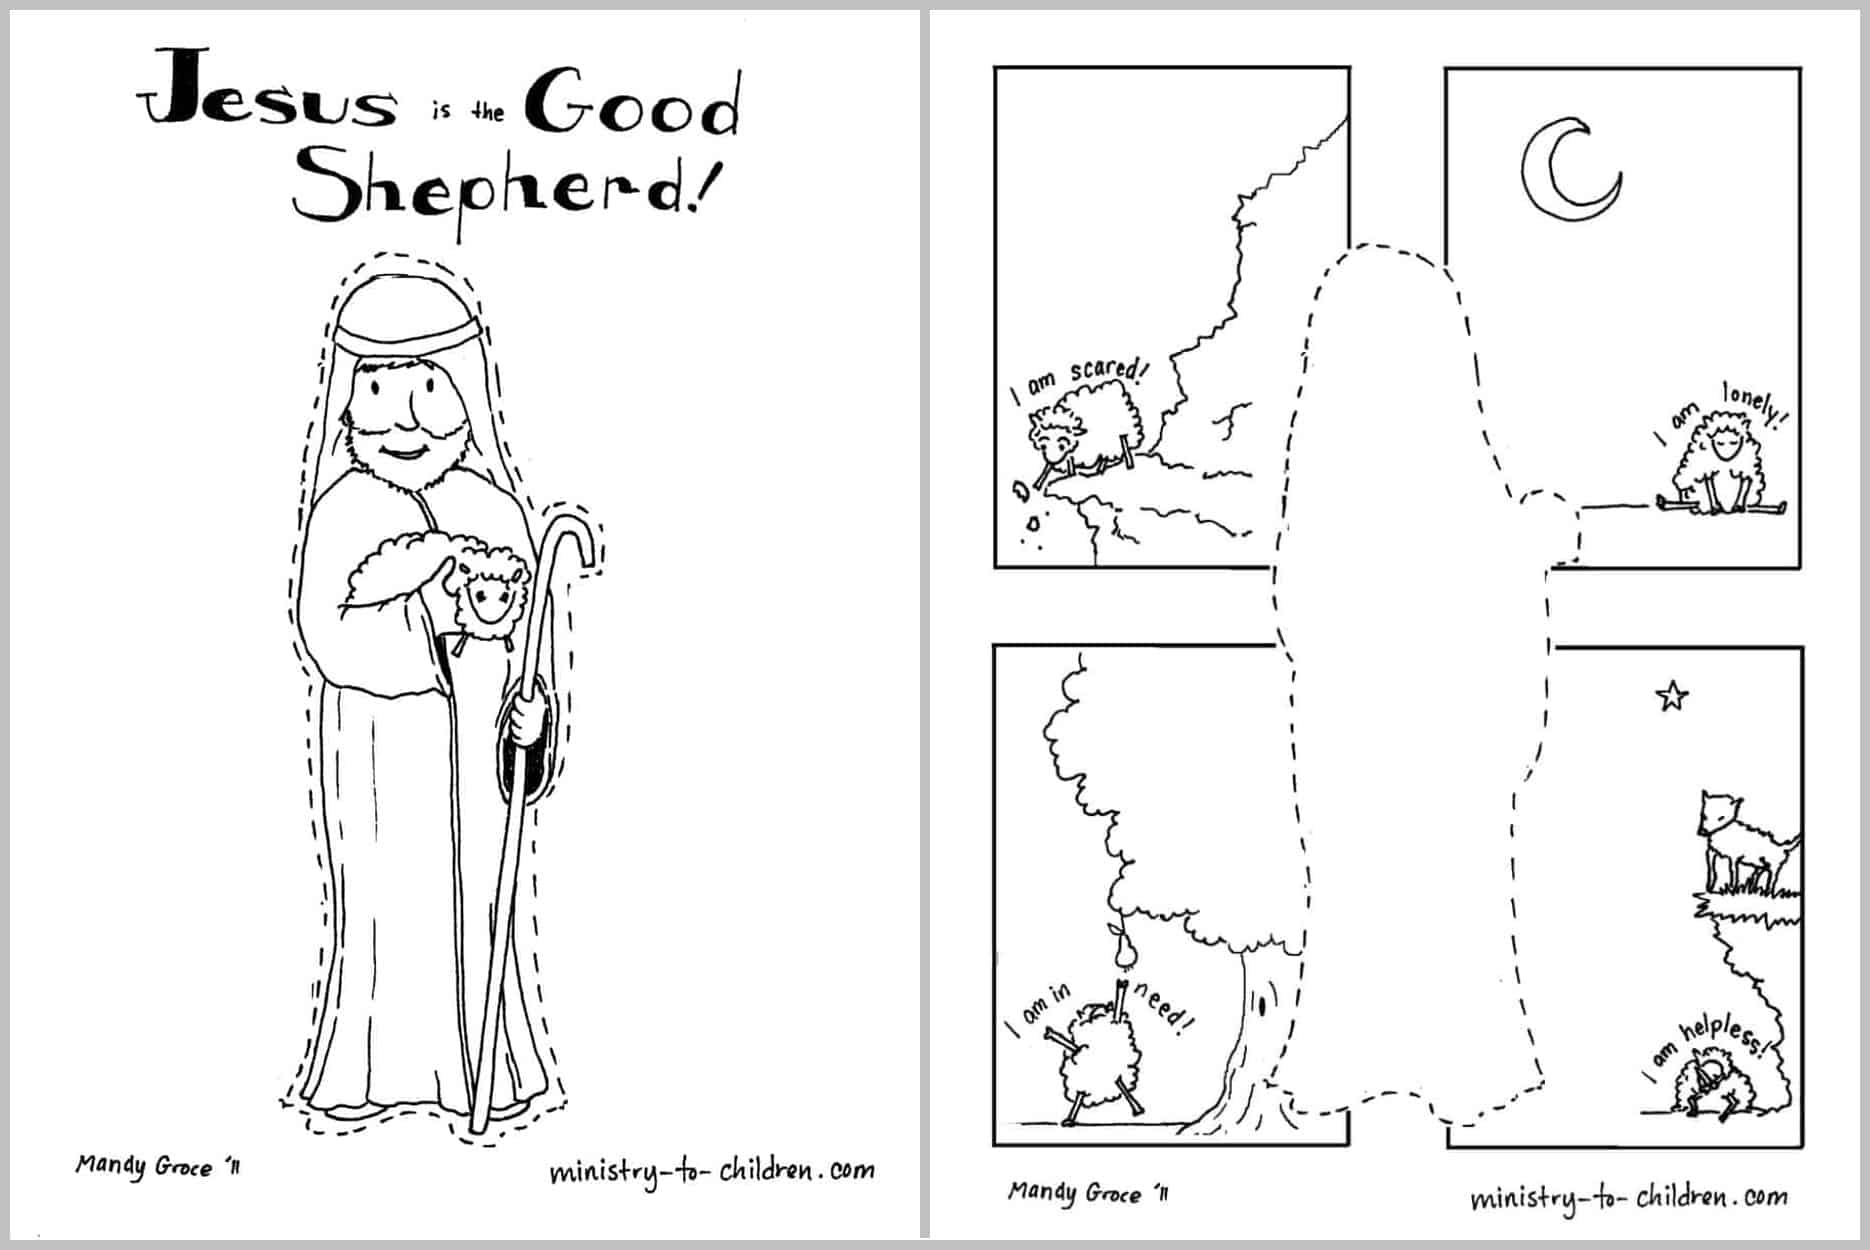 The Good Shepherd Coloring Page Jesus Is The Good Shepherd Coloring Page Easy Print 100 Free